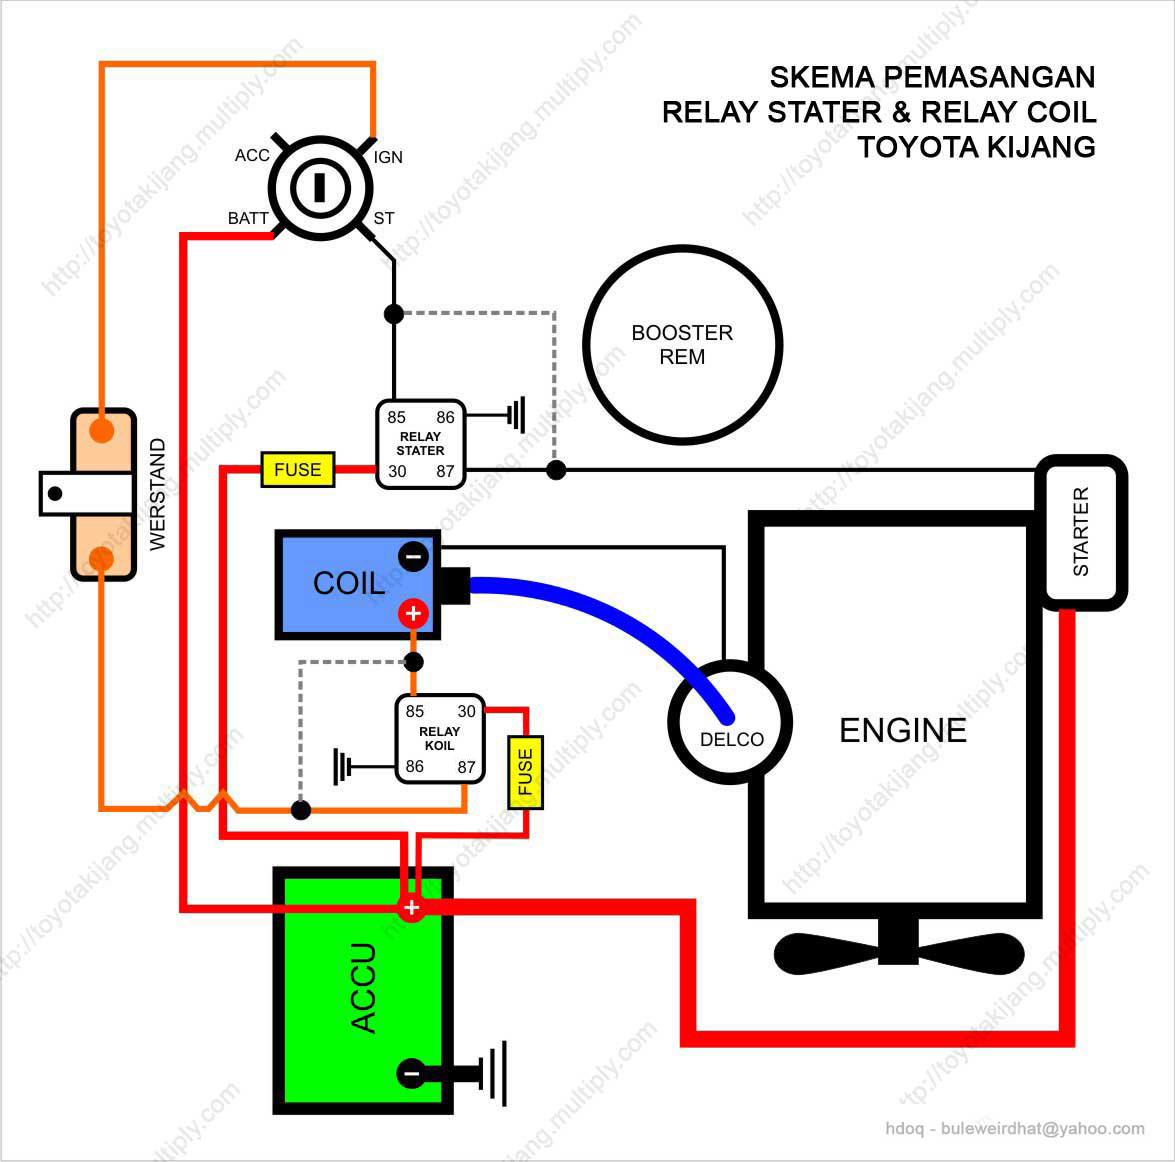 hight resolution of wiring diagram toyota kijang 7k efi wiring library rh 88 webseiten archiv de harga mobil bekas toyota kijang super toyota kijang 1996